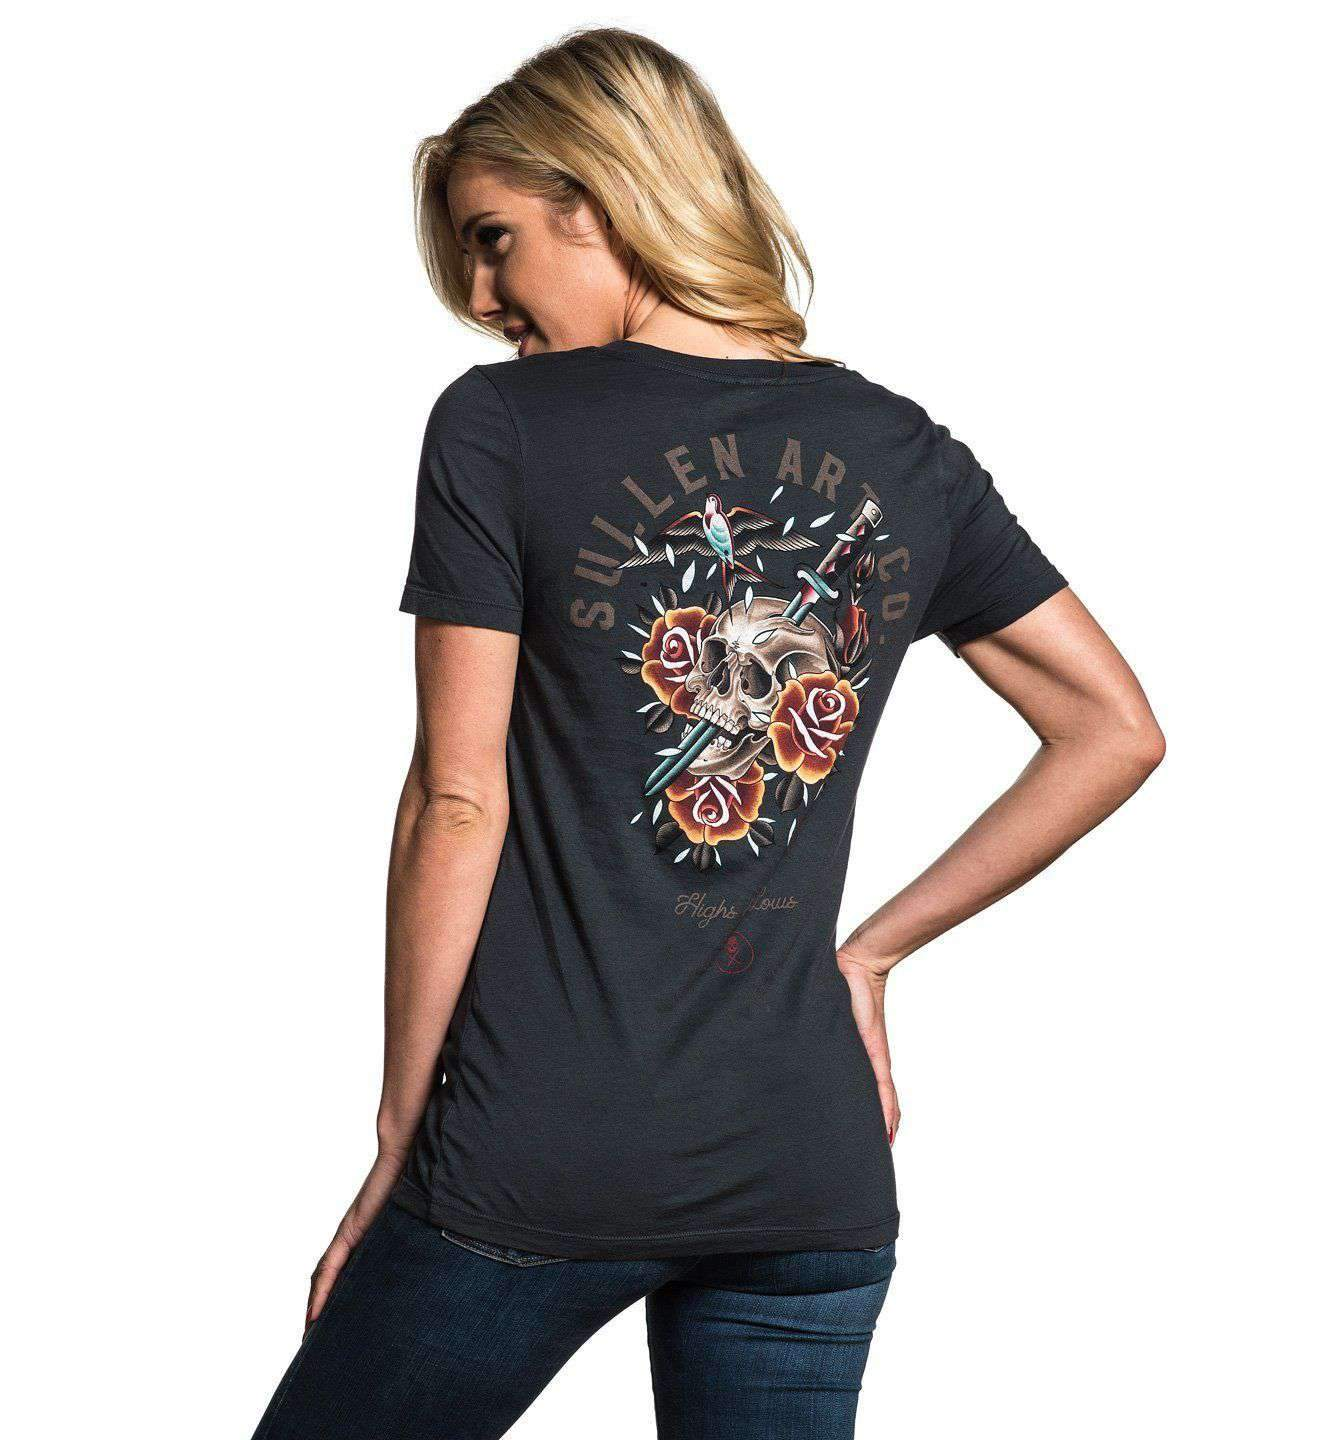 Sparrose Ladies V-Neck T-Shirt by Sullen